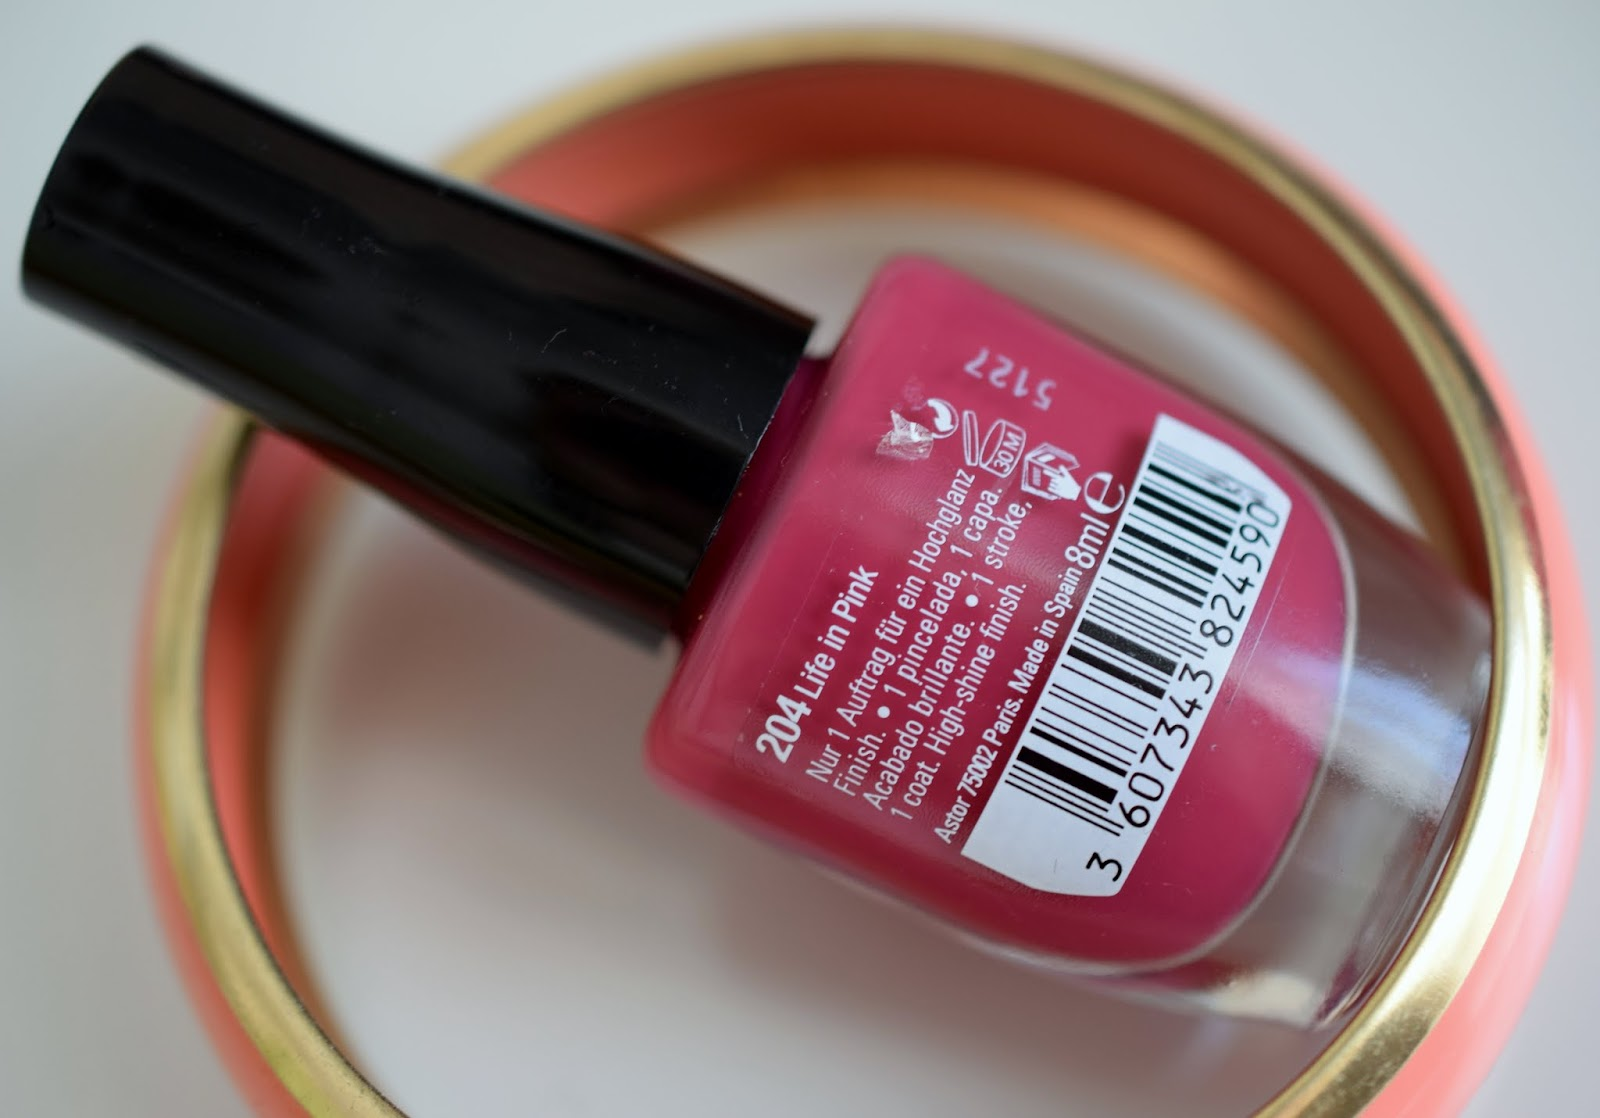 Astor Quick & Shine 204 Life in Pink